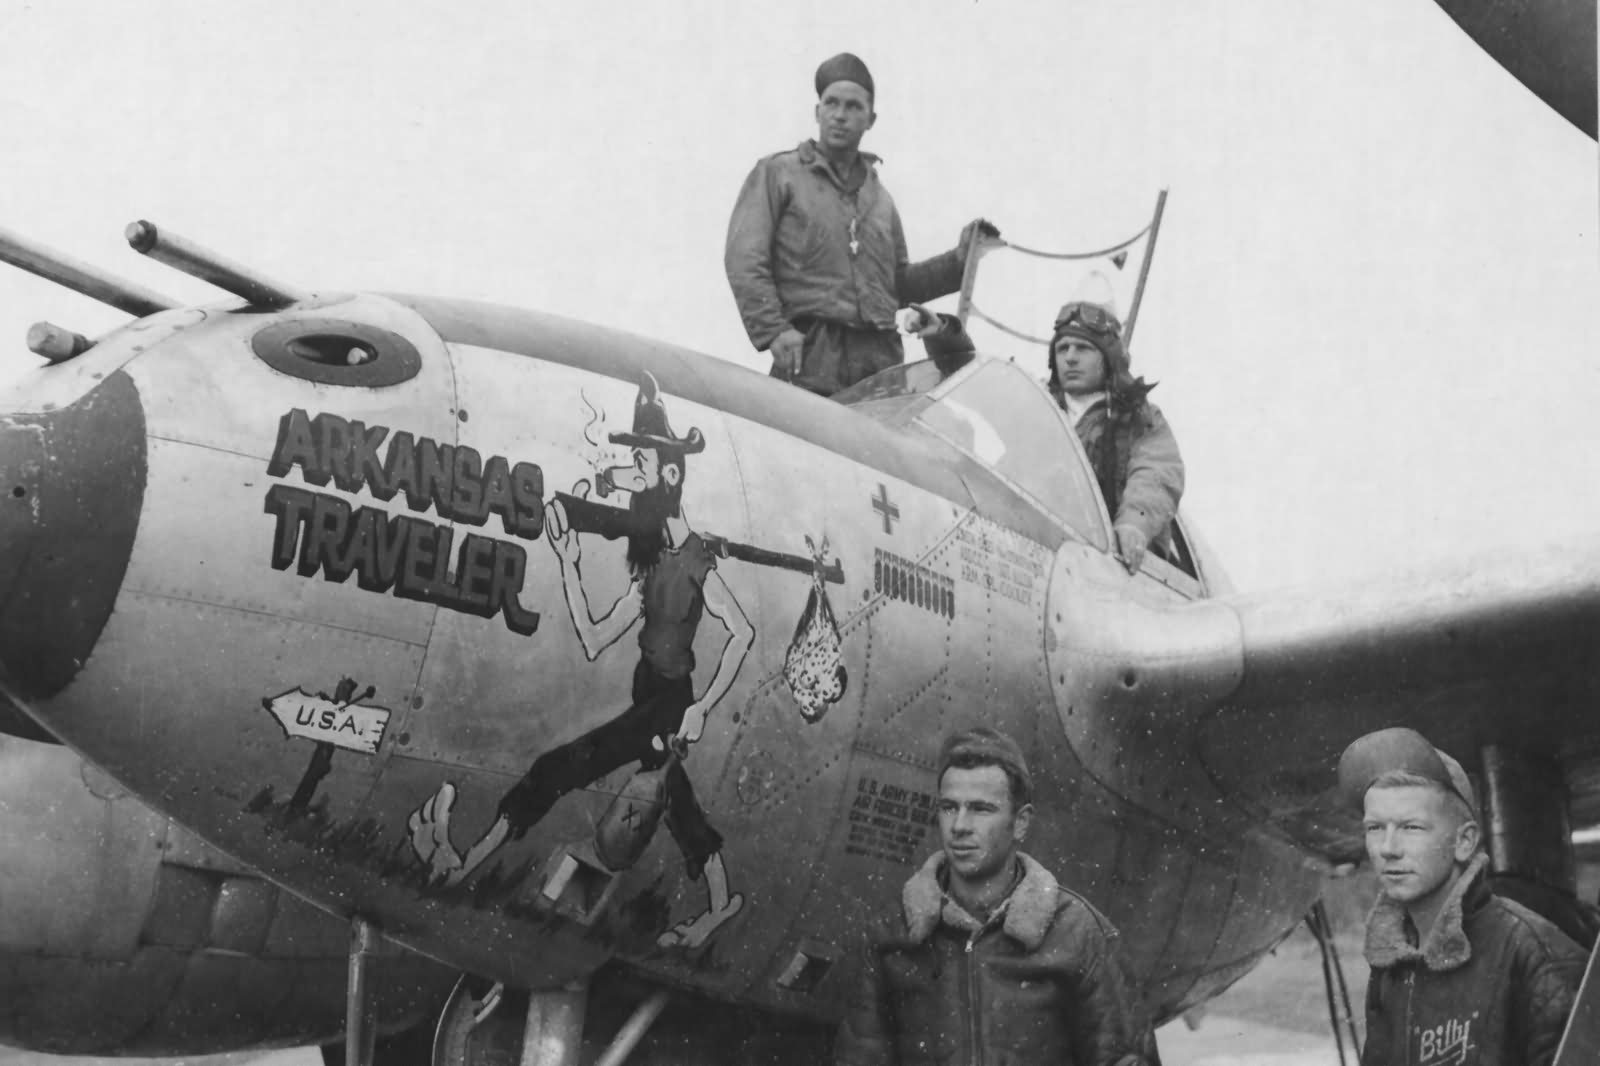 https://www.worldwarphotos.info/wp-content/gallery/usa/aircrafts/p-38-lightning/P-38J_Lightning_Lt_Fincher_367th_FG_Arkansas_Traveler_Nose_Art.jpg